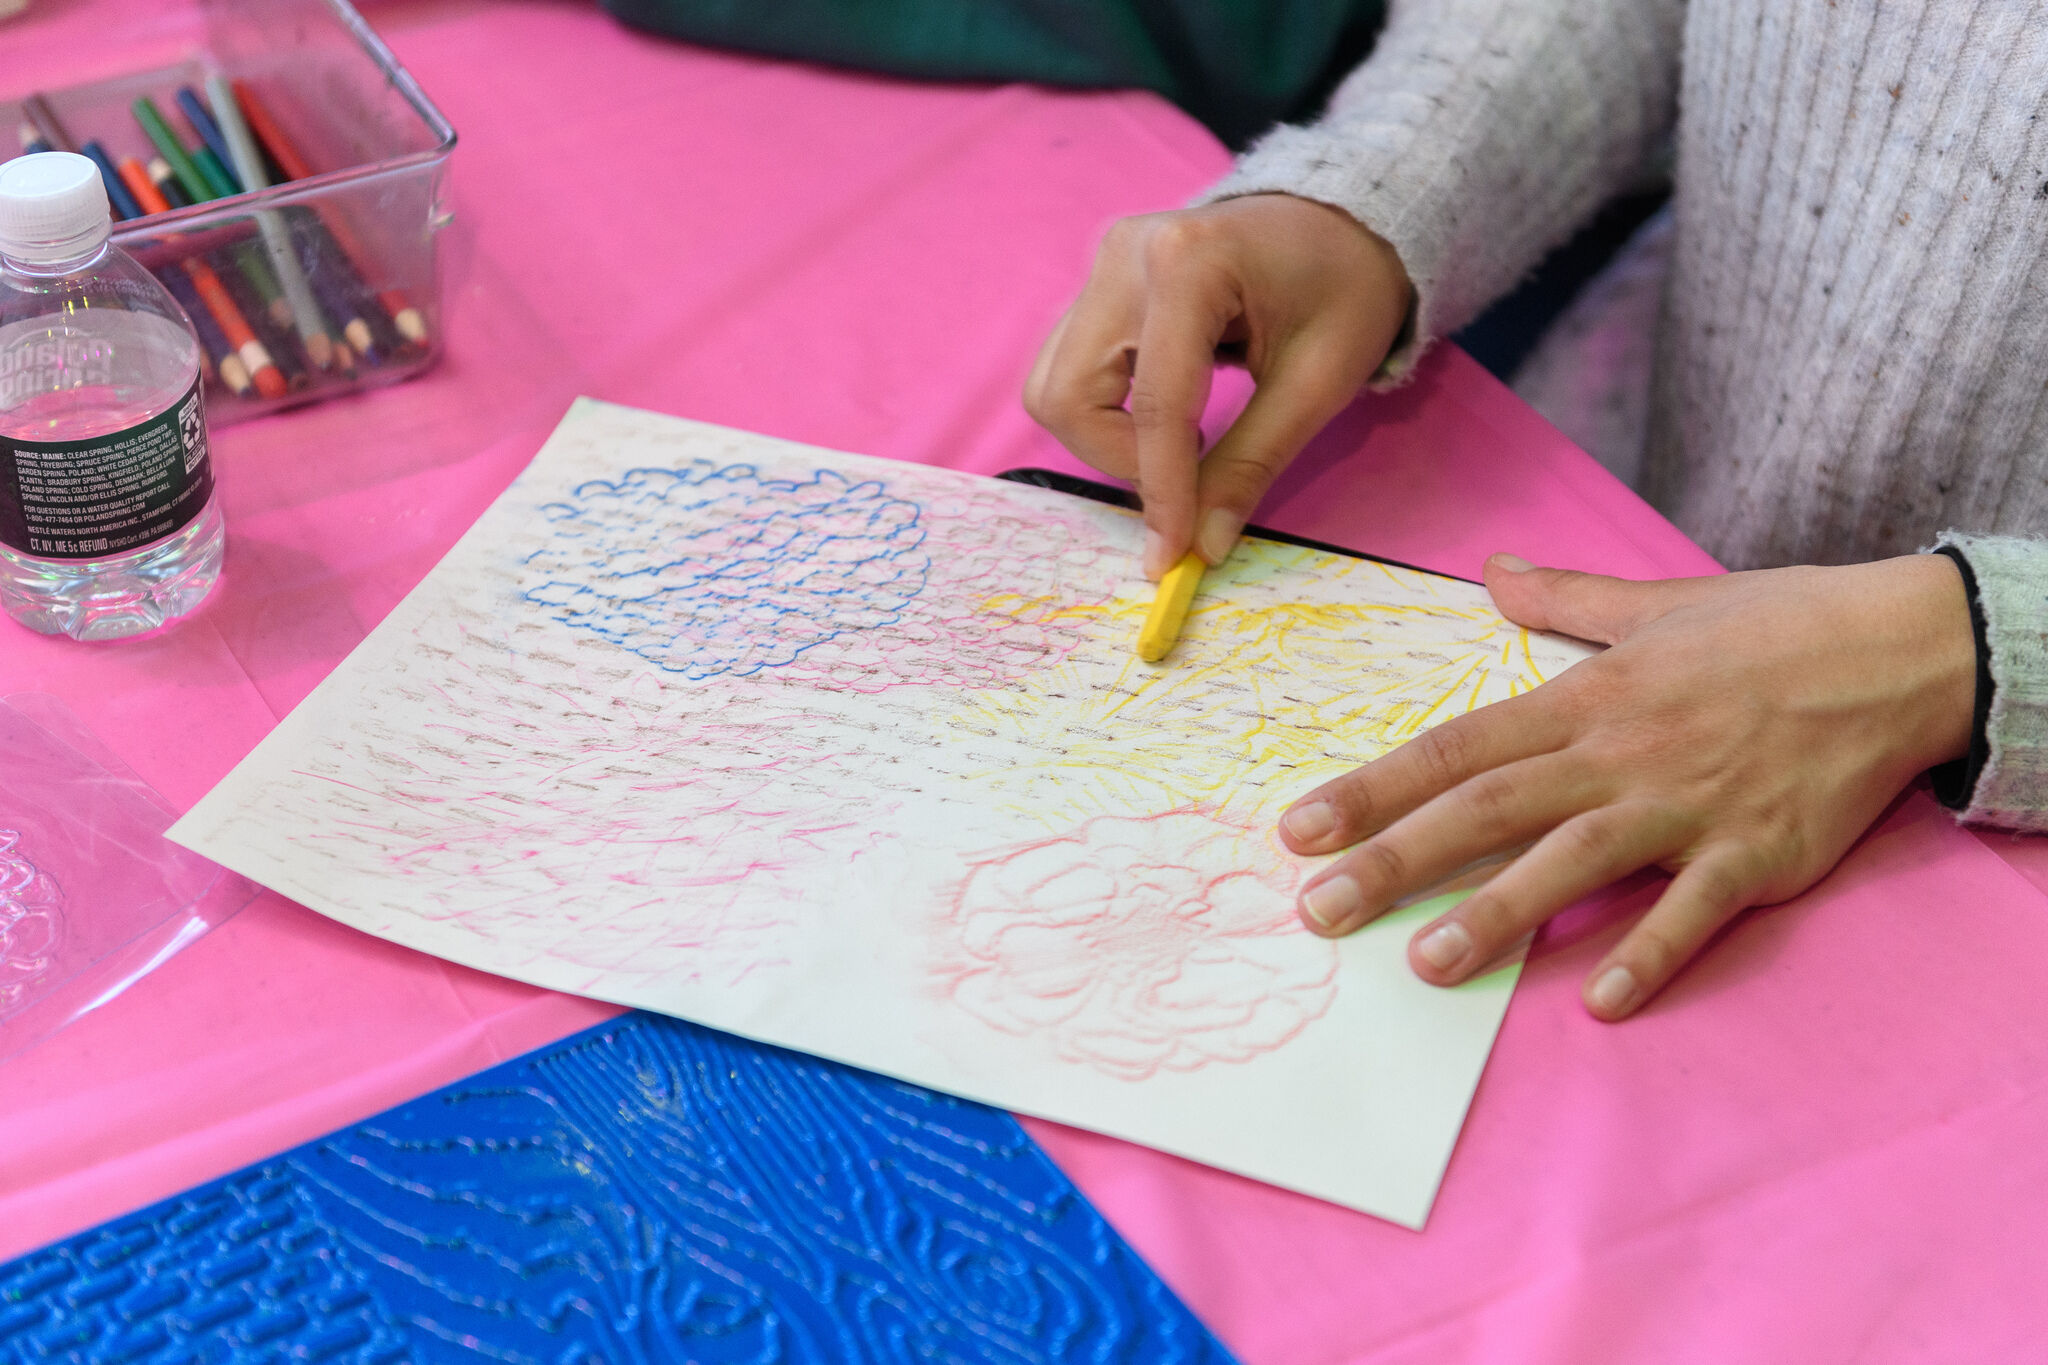 A person's hands lay over a piece of construction paper as they use a crayon to shade over a drawing.